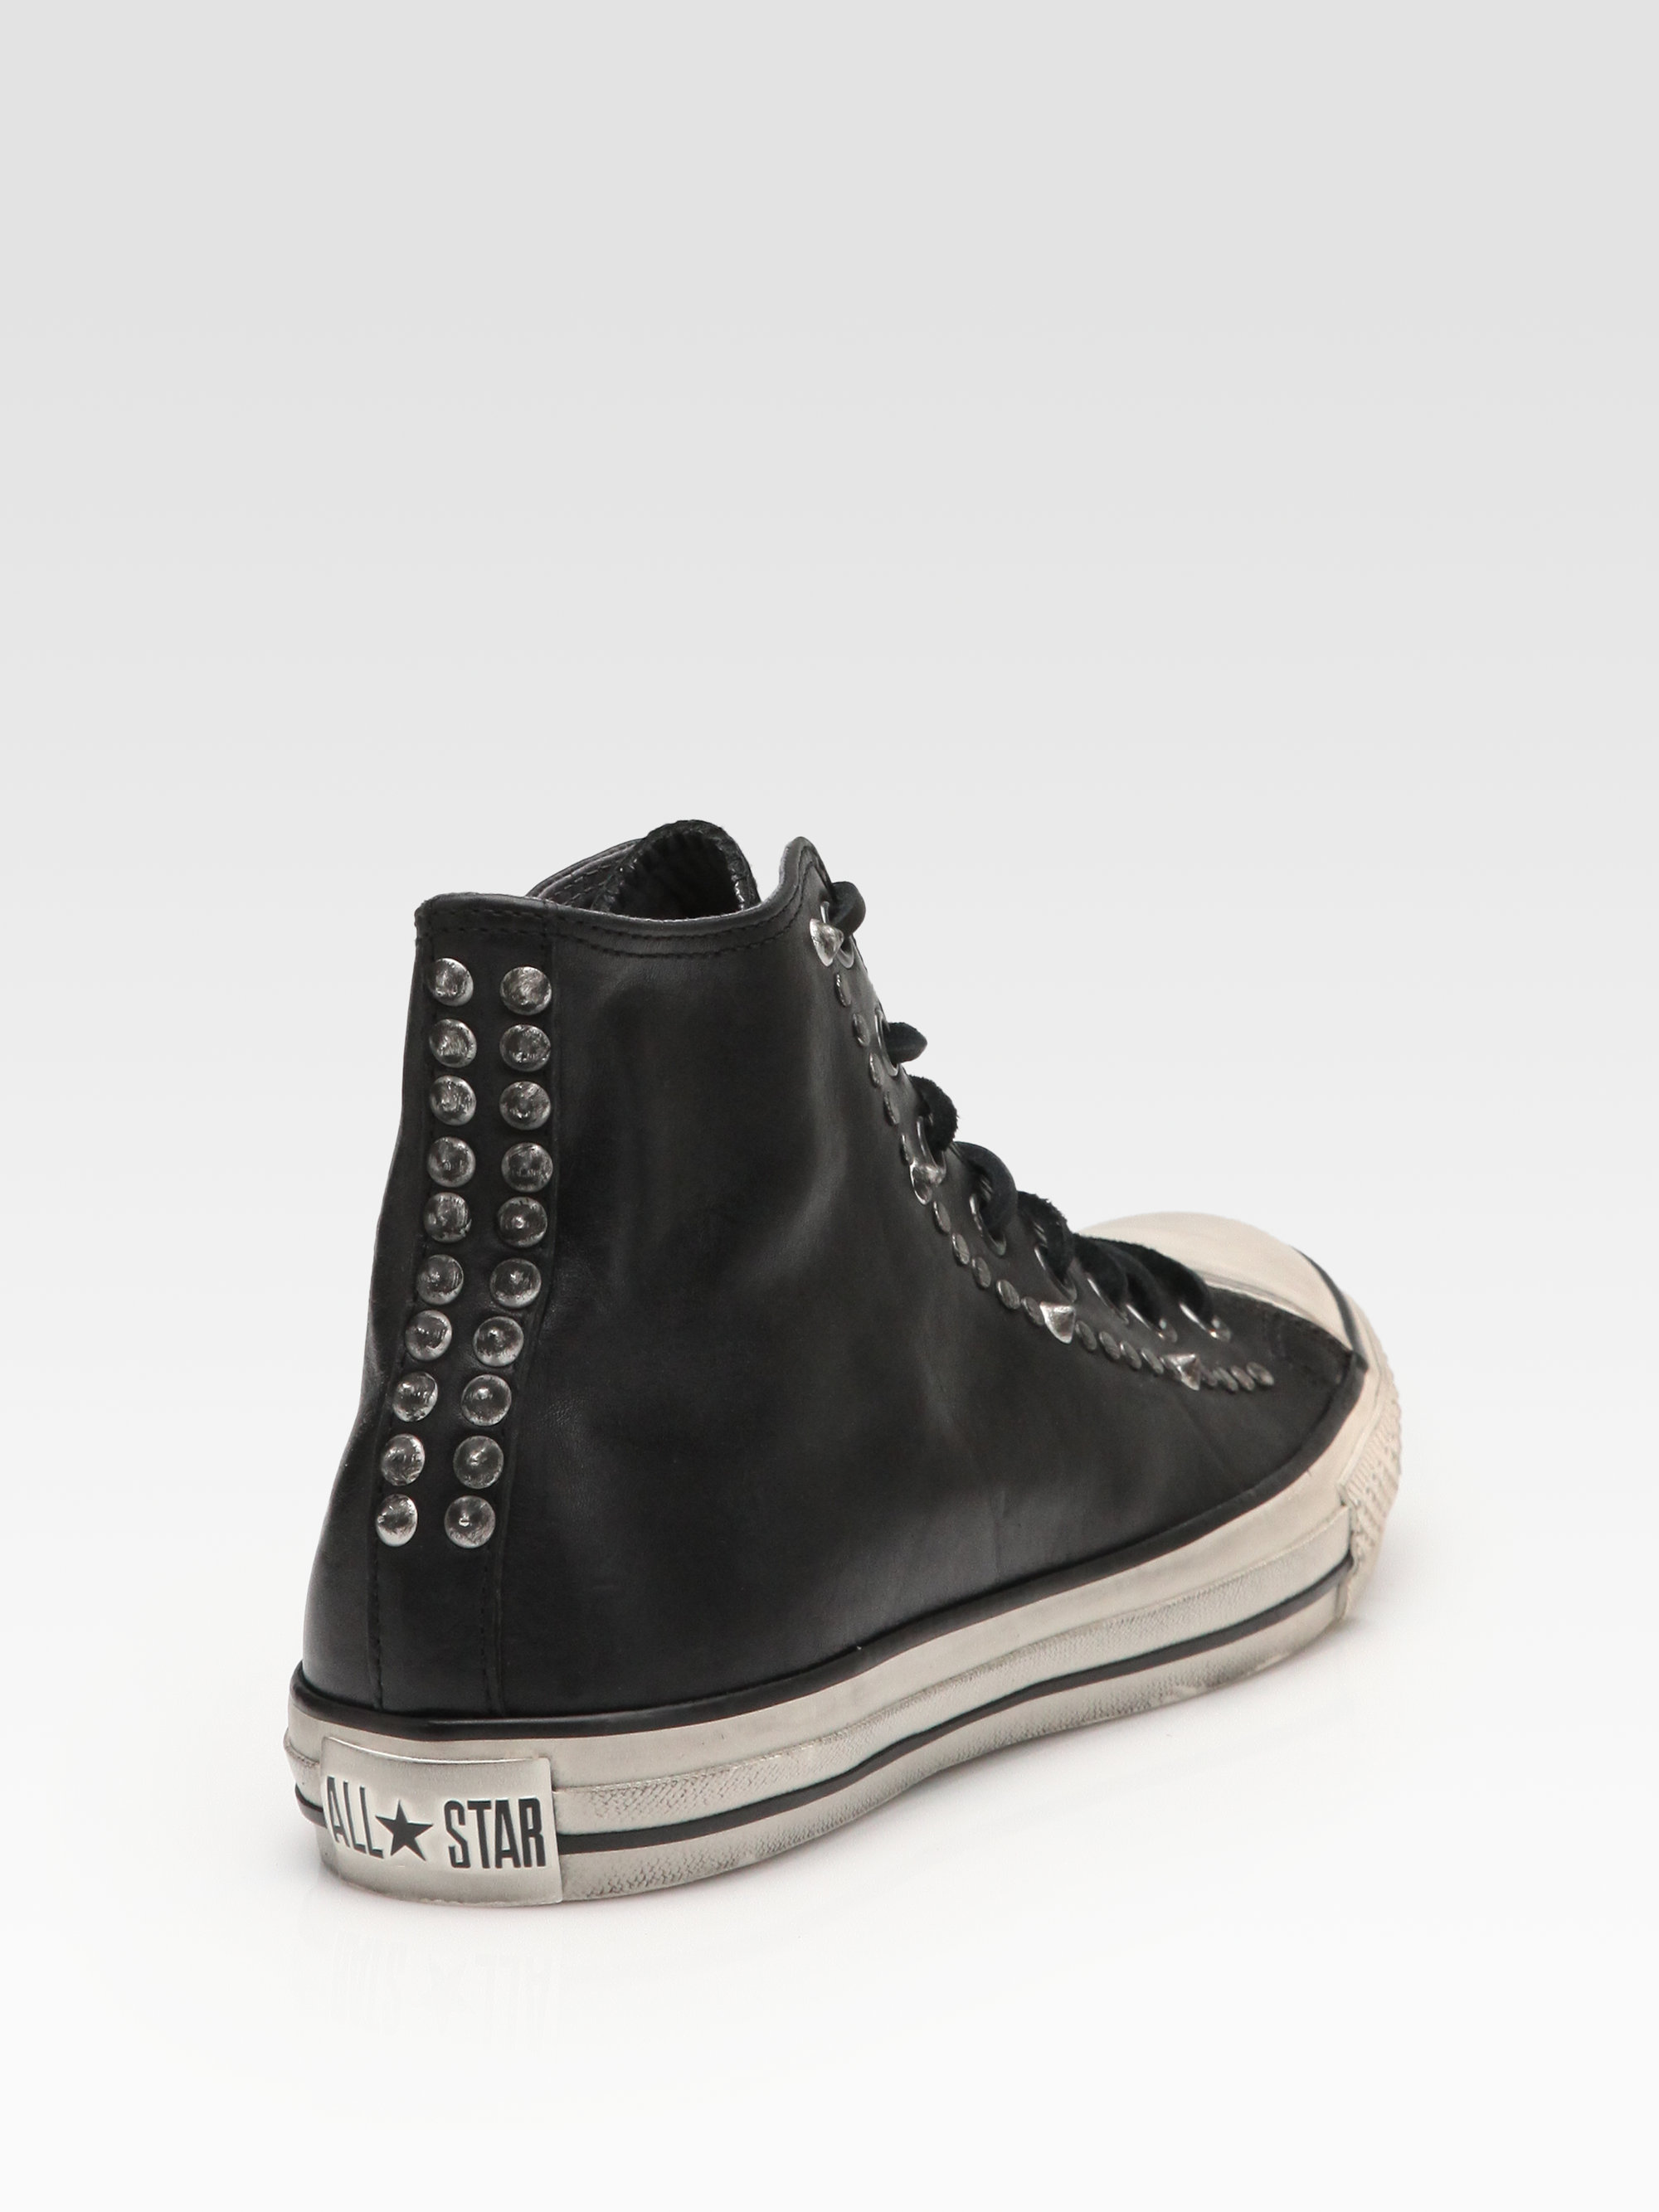 Lyst - Converse John Varvatos Studded Leather High-tops in